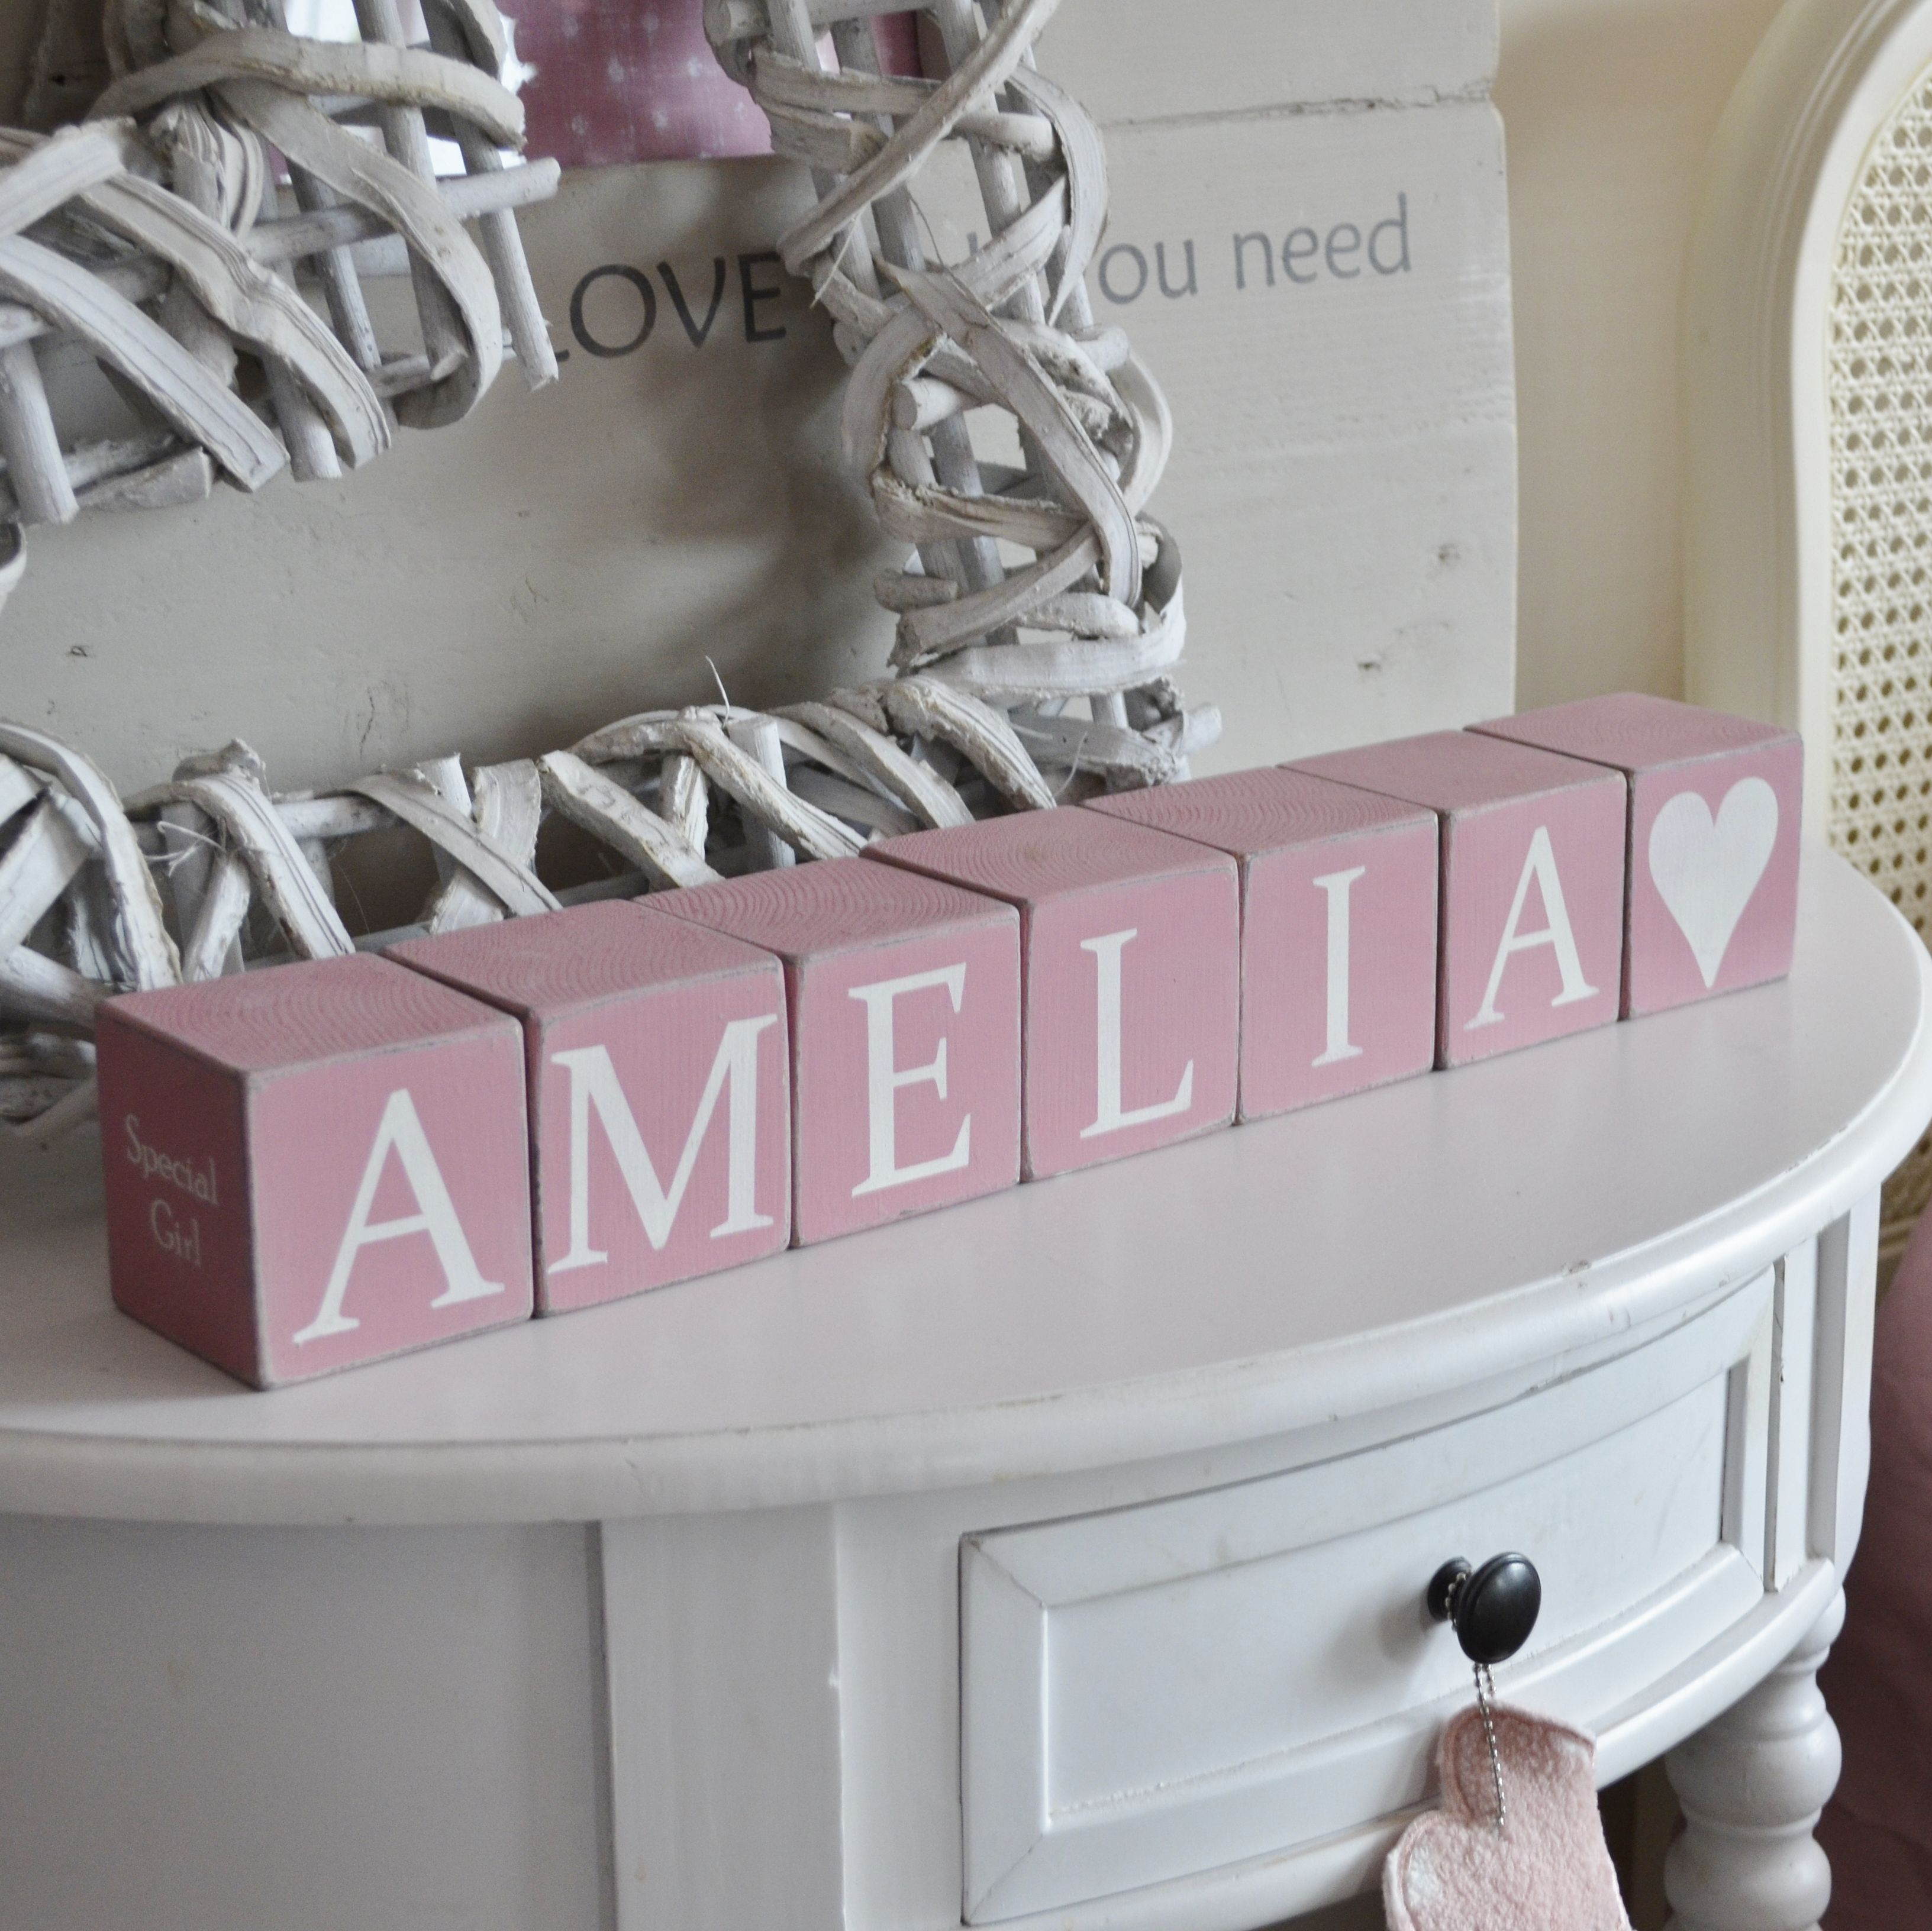 Gorgeous thoughtful and meaningful gifts for little ones gorgeous thoughtful and meaningful gifts for little ones personalised name blocks littleboots negle Image collections